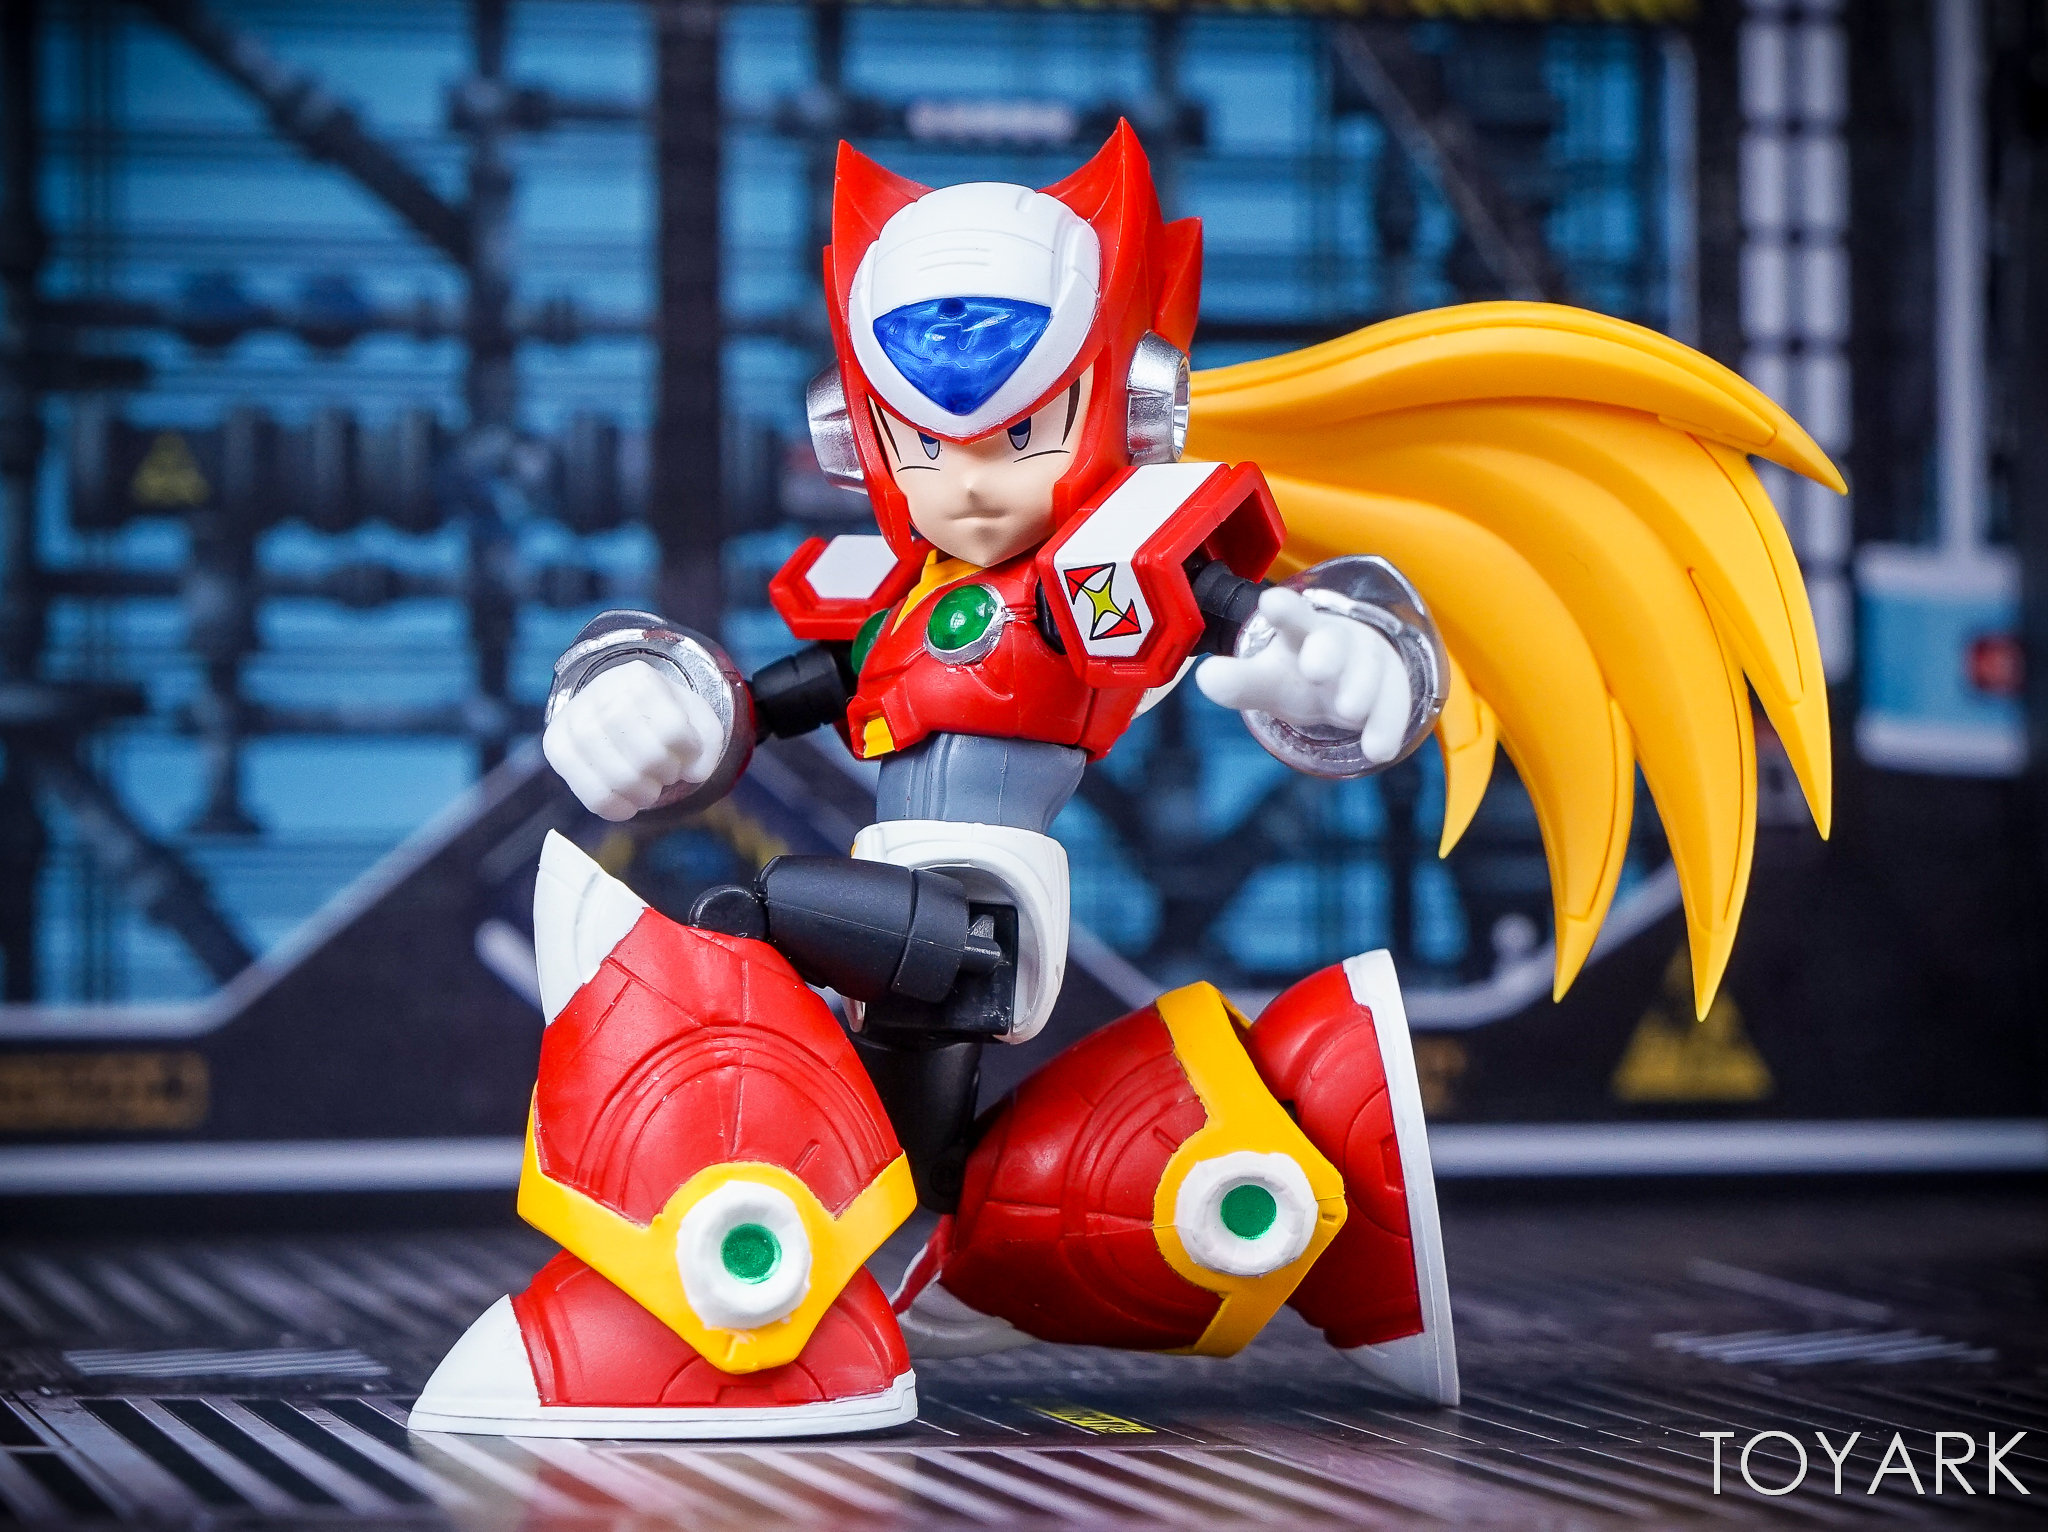 http://news.toyark.com/wp-content/uploads/sites/4/2017/11/Mega-Man-X-NX-Edge-Style-033.jpg